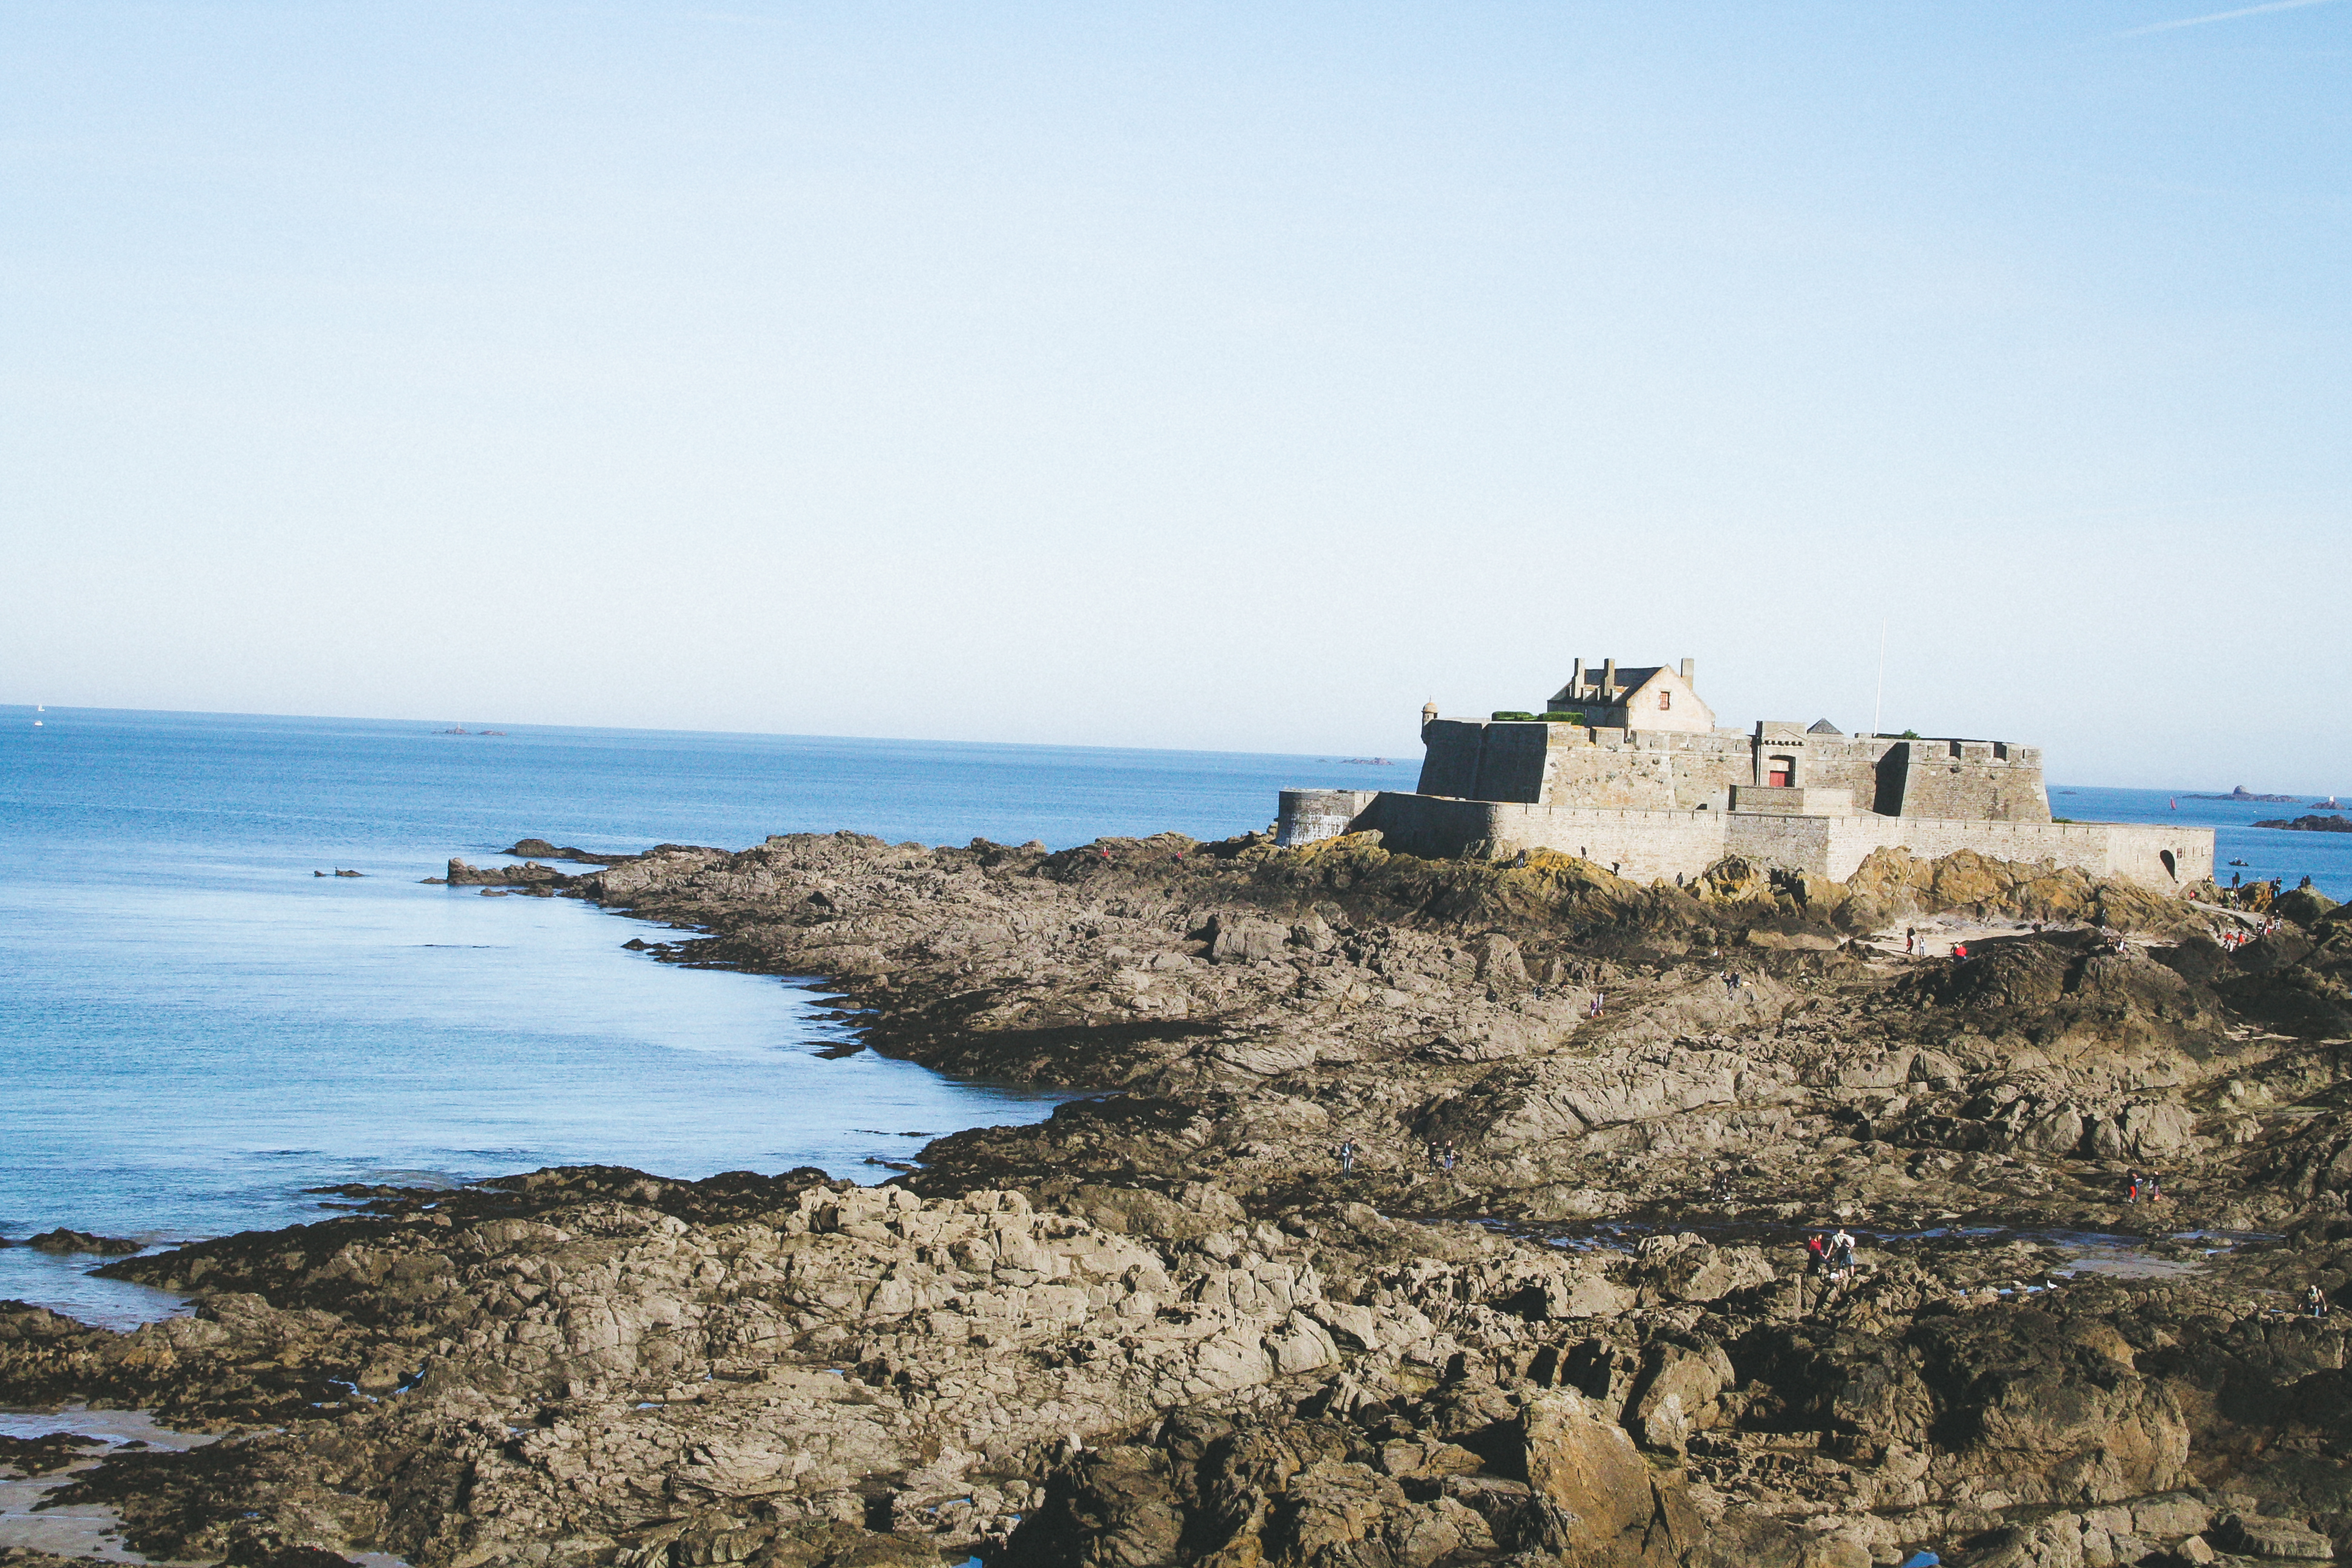 st-malo-rempart-vue-mer